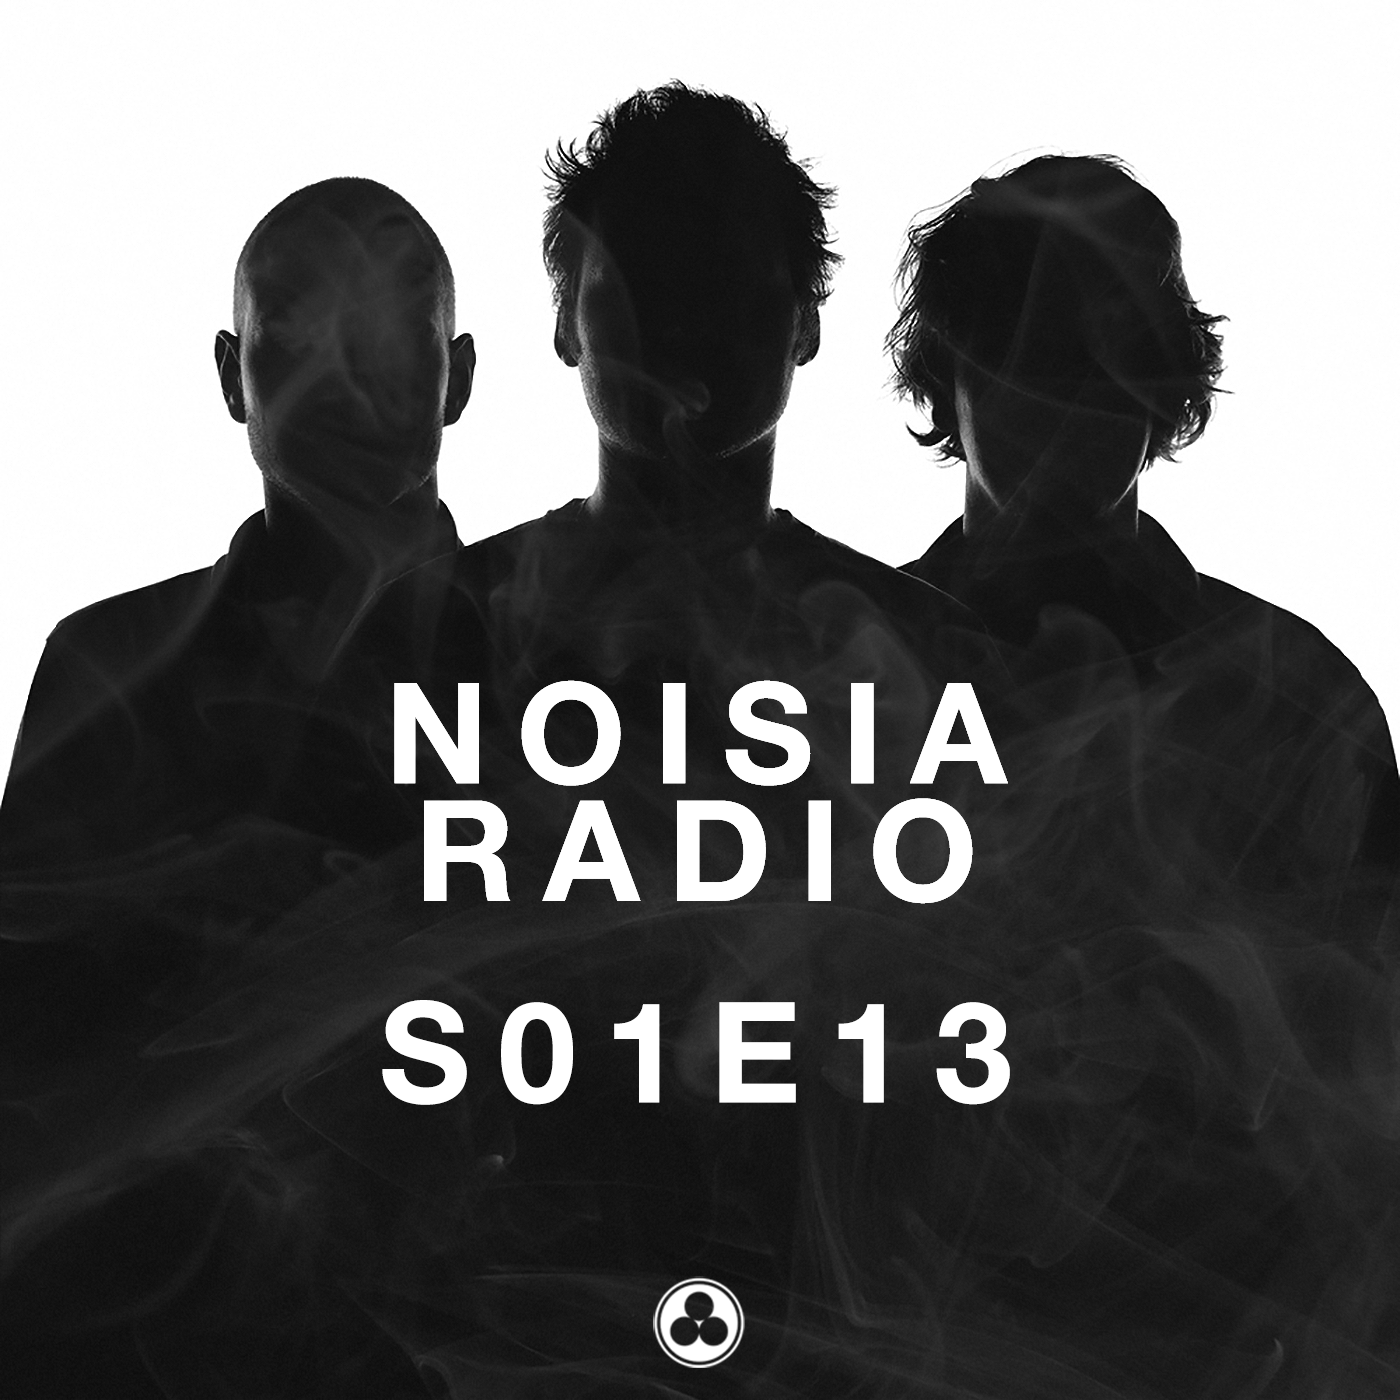 Noisia Radio S01E13